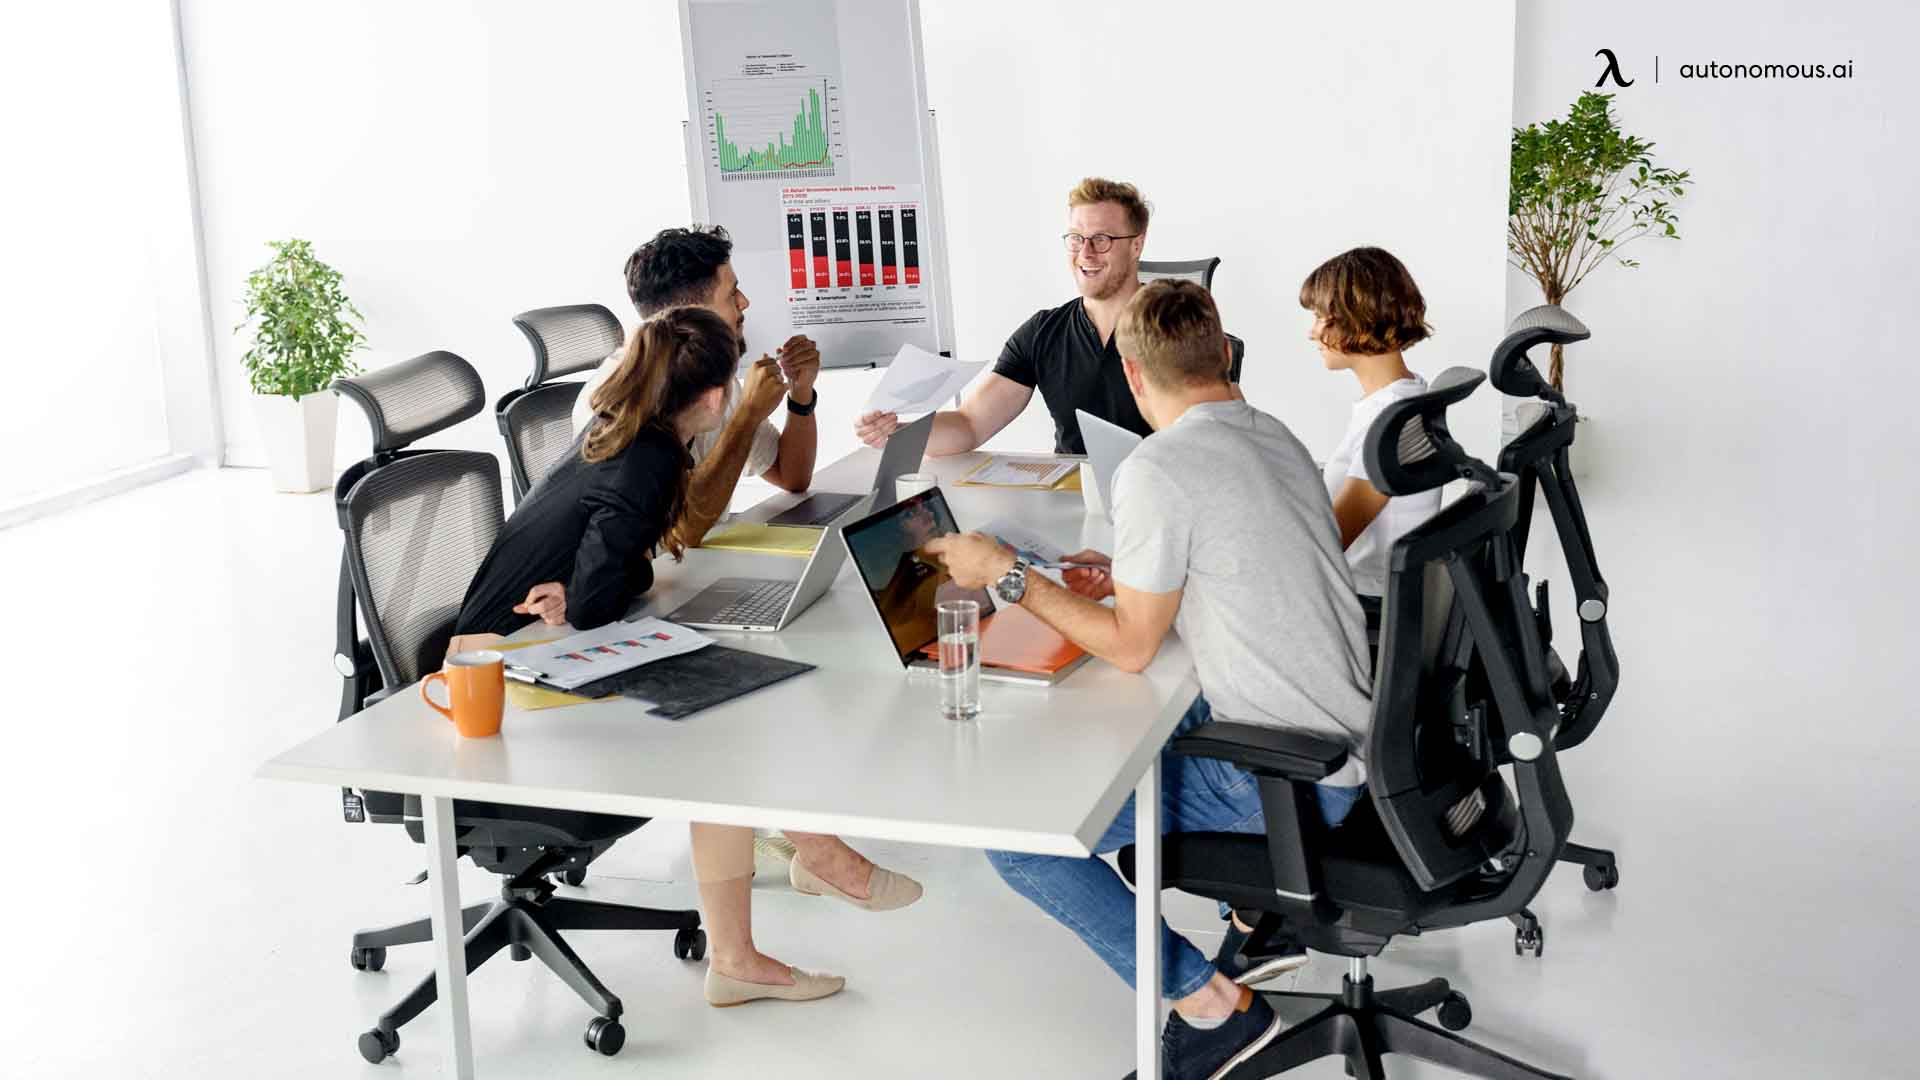 Conference Room Interior Design Style Inspiration